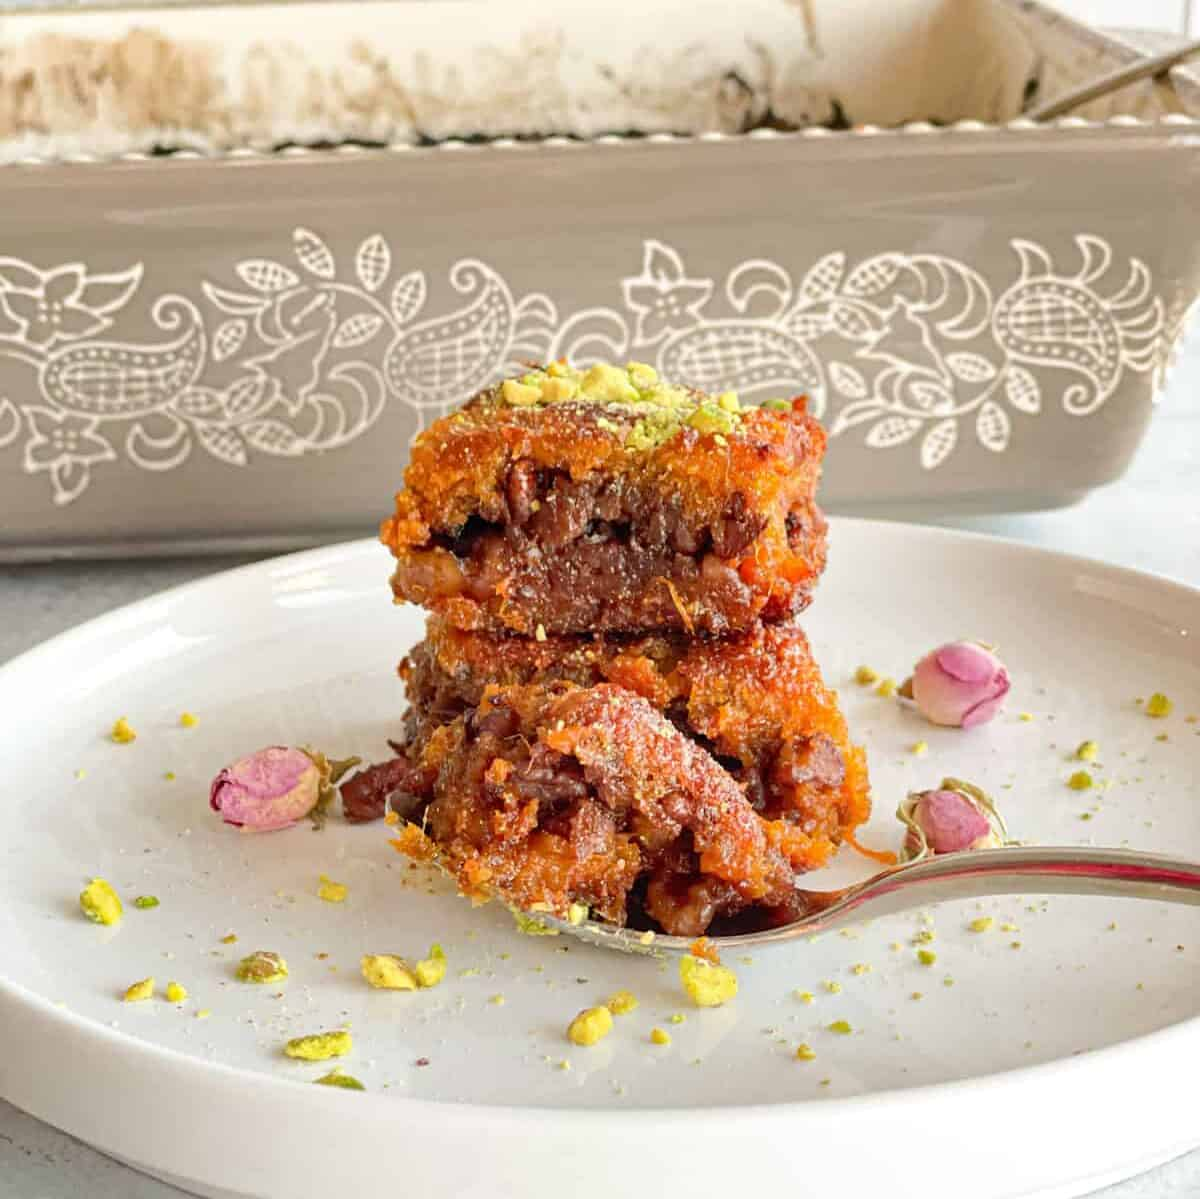 Yummy and simple Sweet Potato Walnut Bars that are delicious and can be prepared ahead of time and stored in the freezer